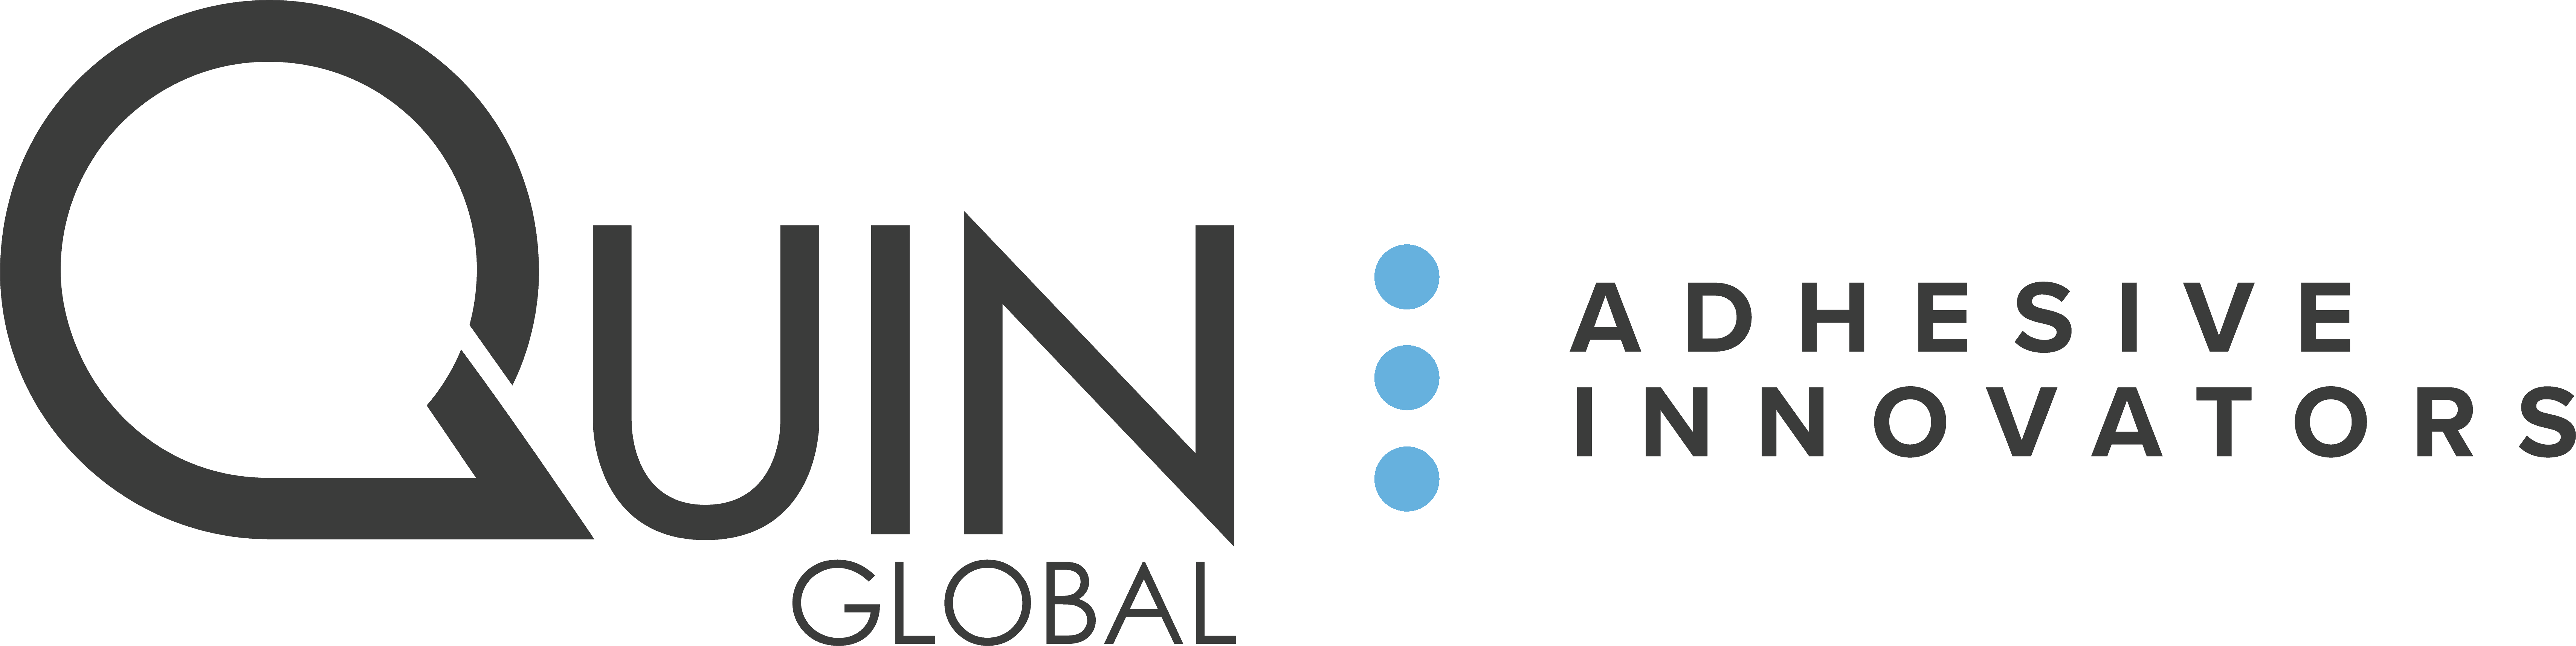 Quin Global Logo